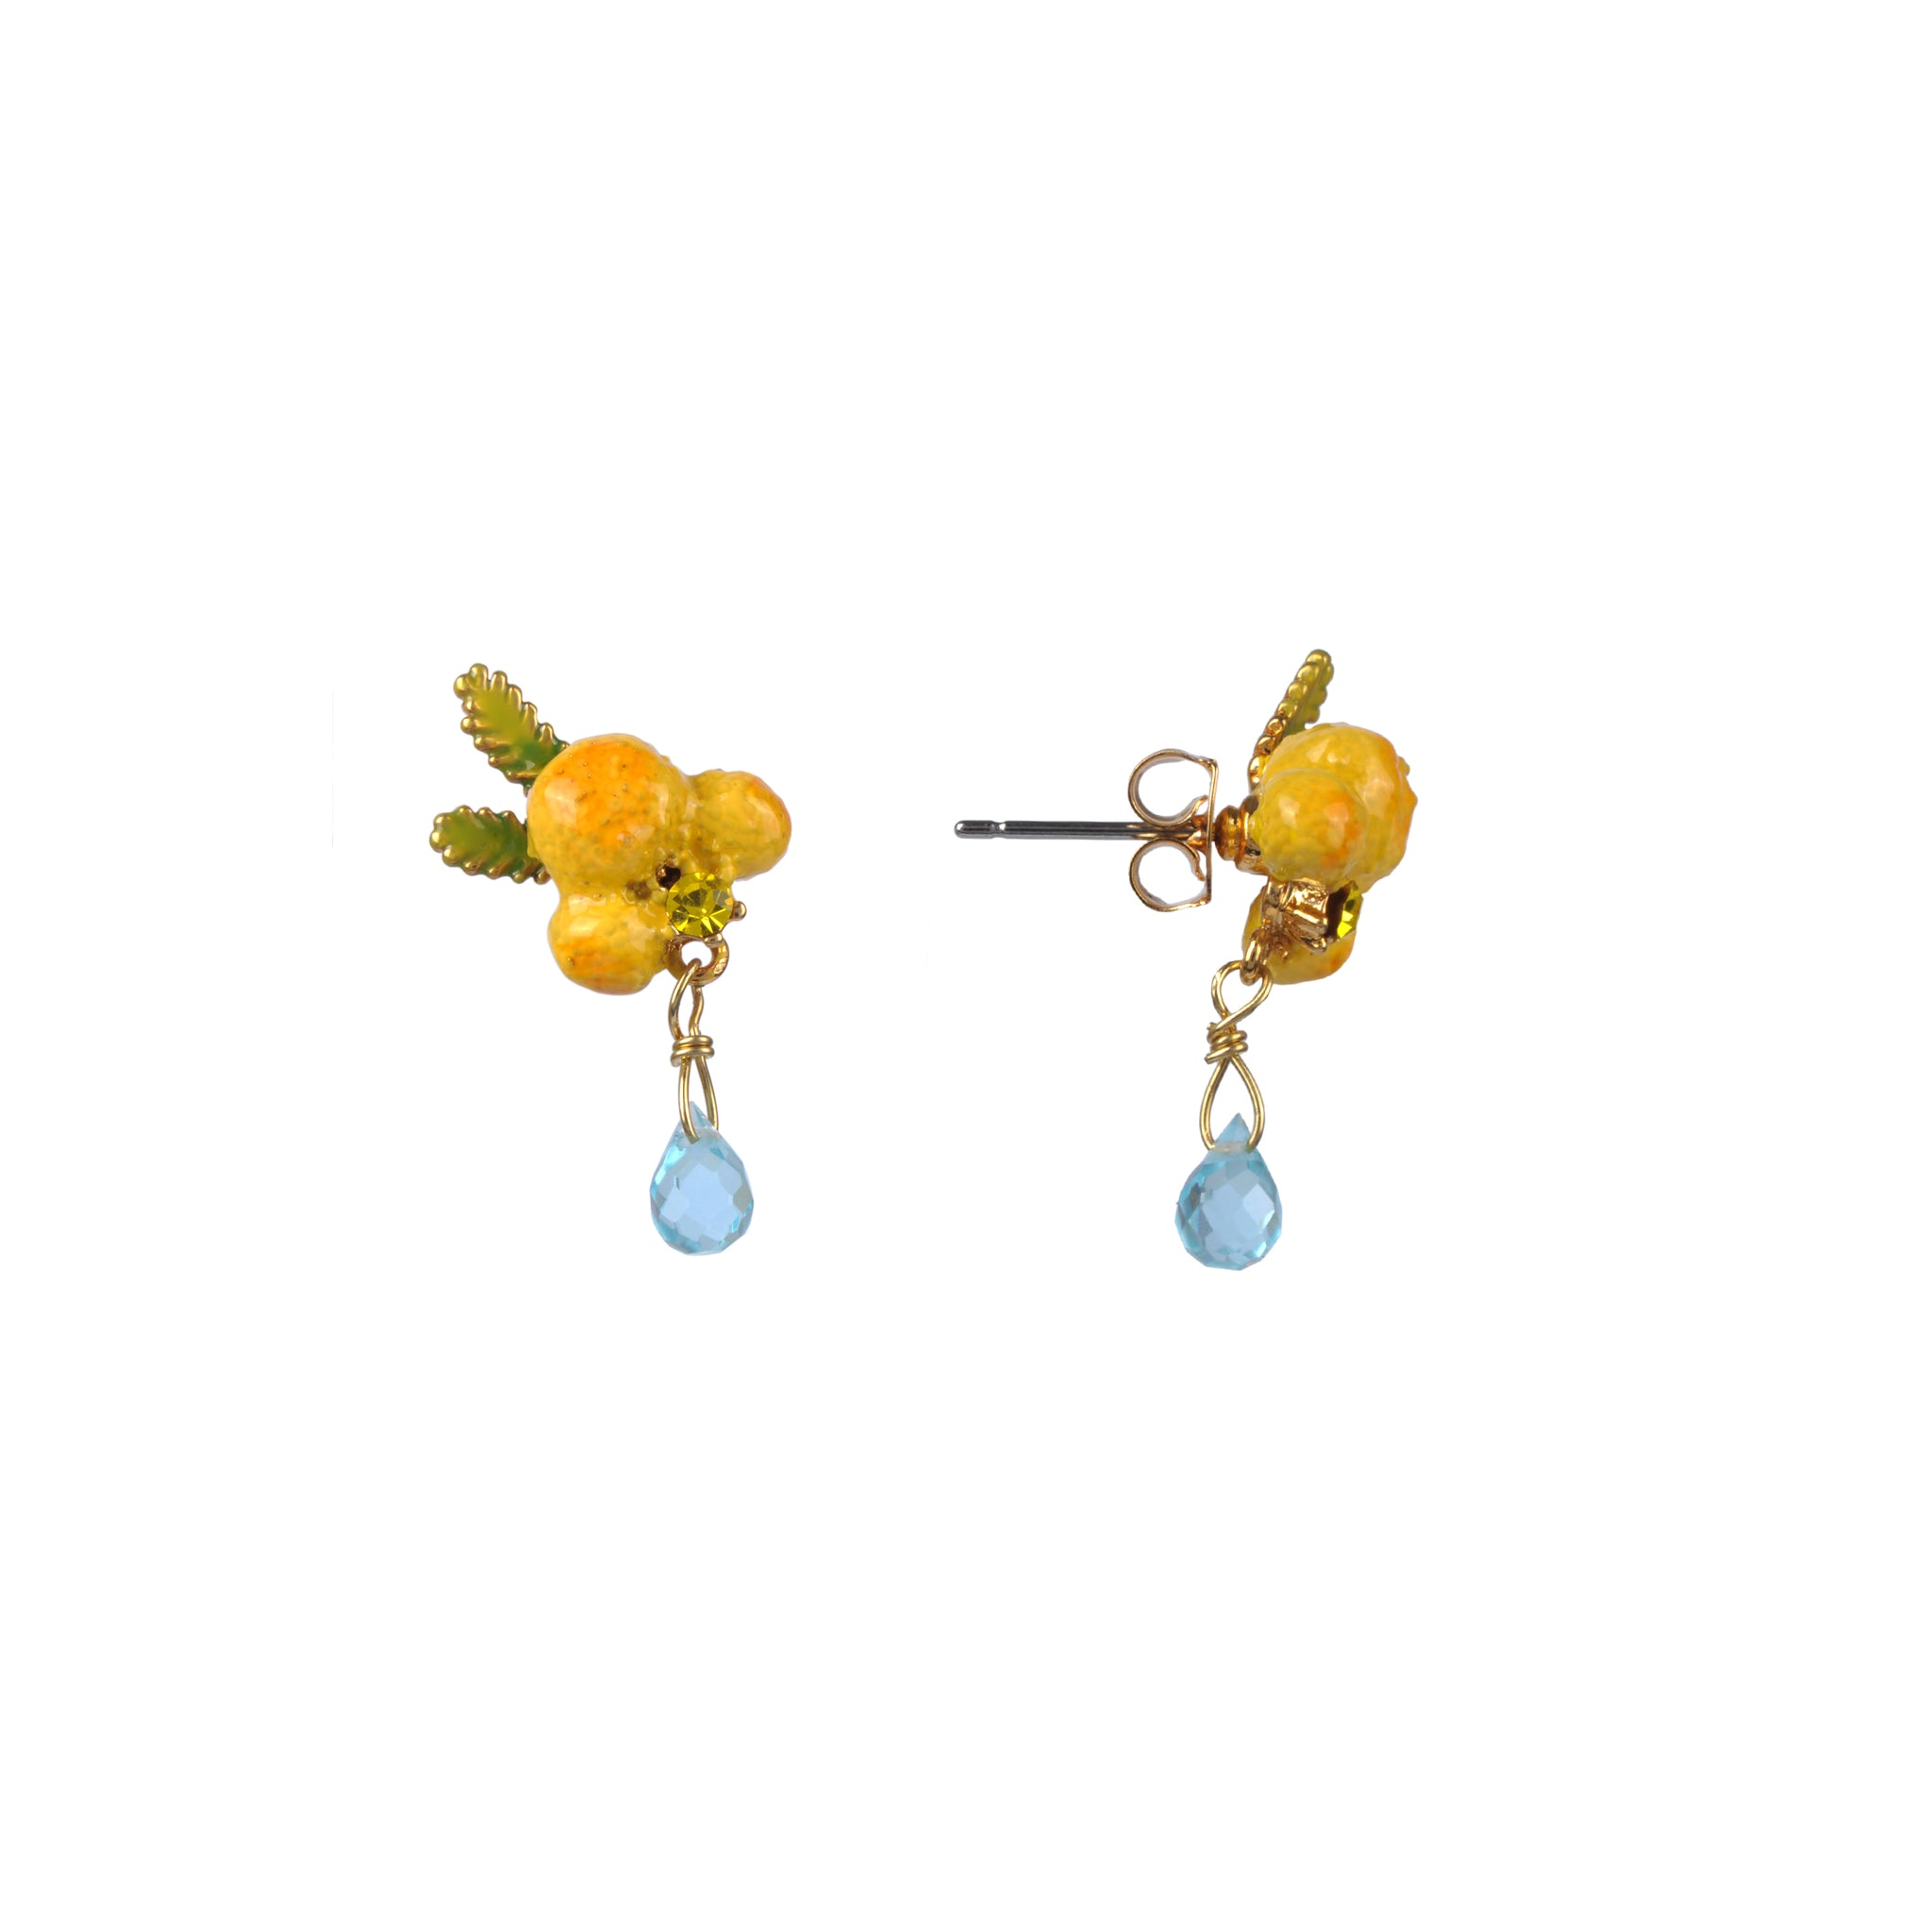 Mimosa Flower and Leaves Stud Earrings